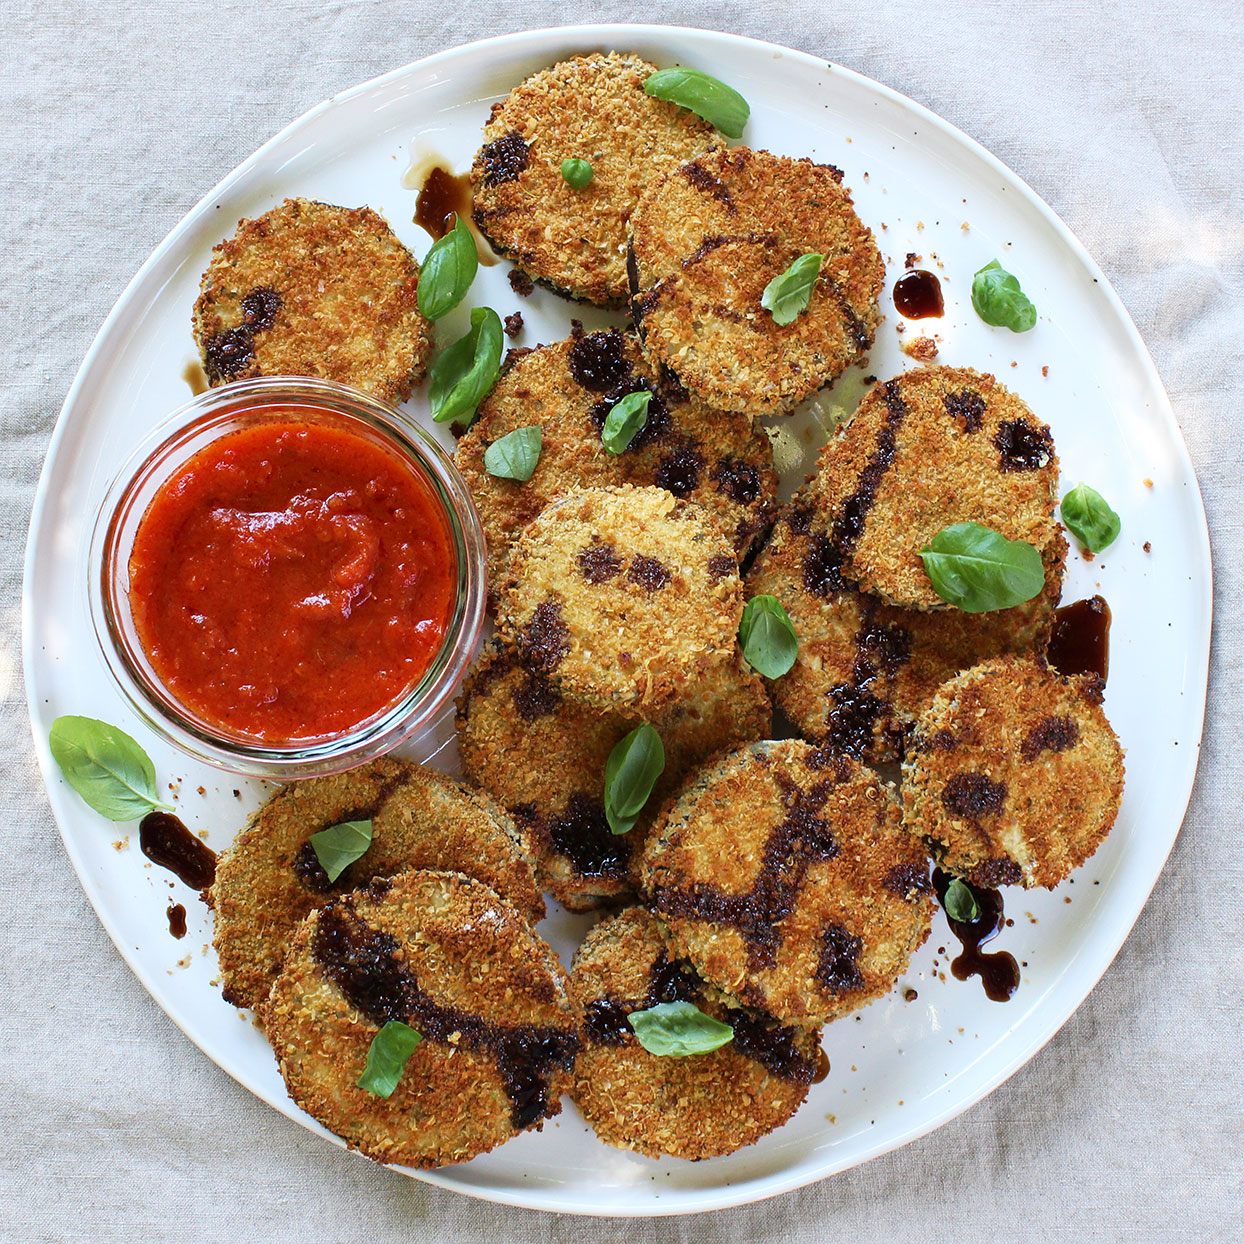 Baked Breaded Eggplant Allrecipes Trusted Brands